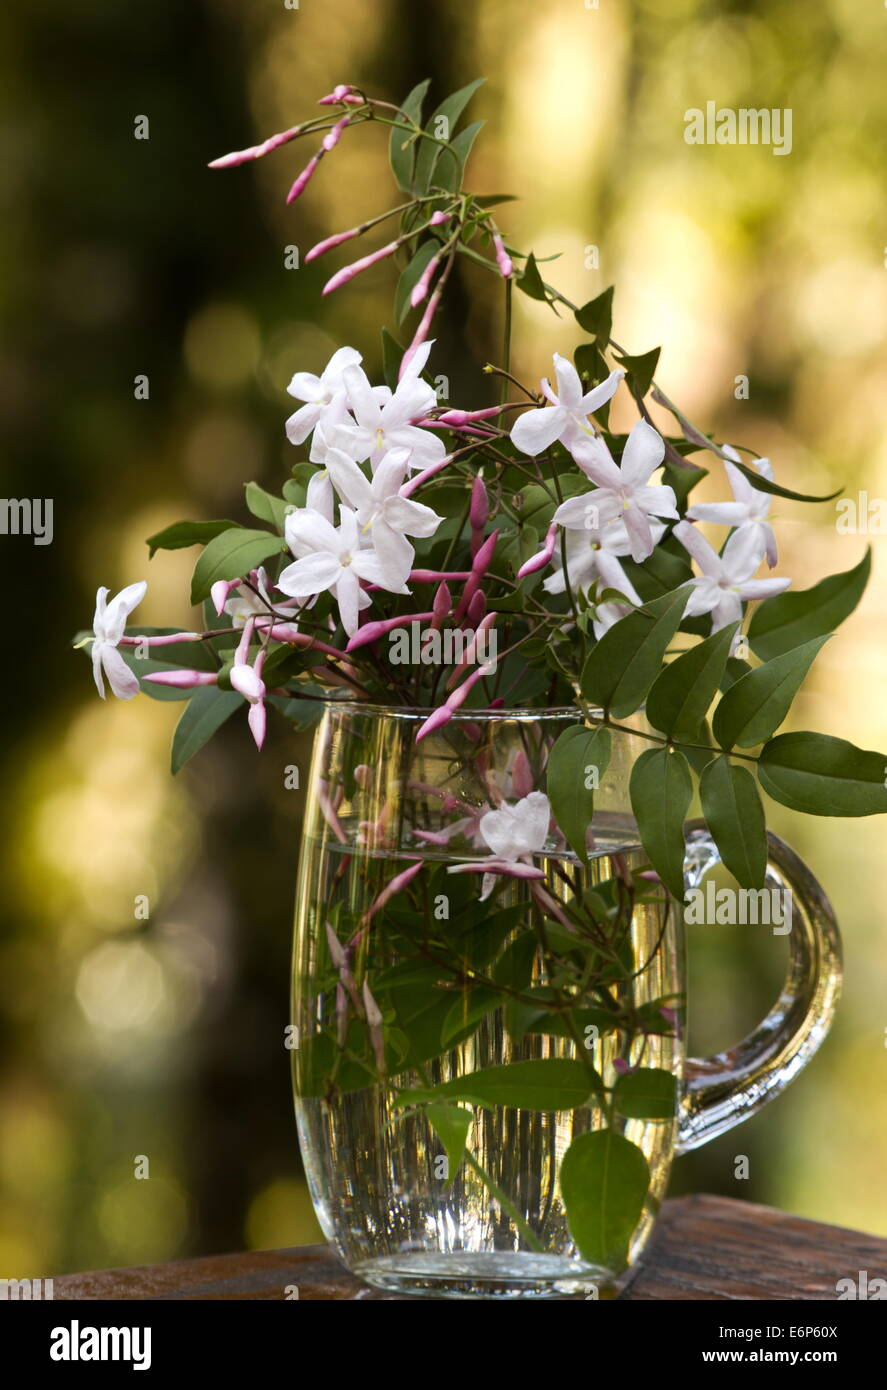 Pink jasmine jasminum polyanthum flowers and buds in a glass mug pink jasmine jasminum polyanthum flowers and buds in a glass mug on a natural background izmirmasajfo